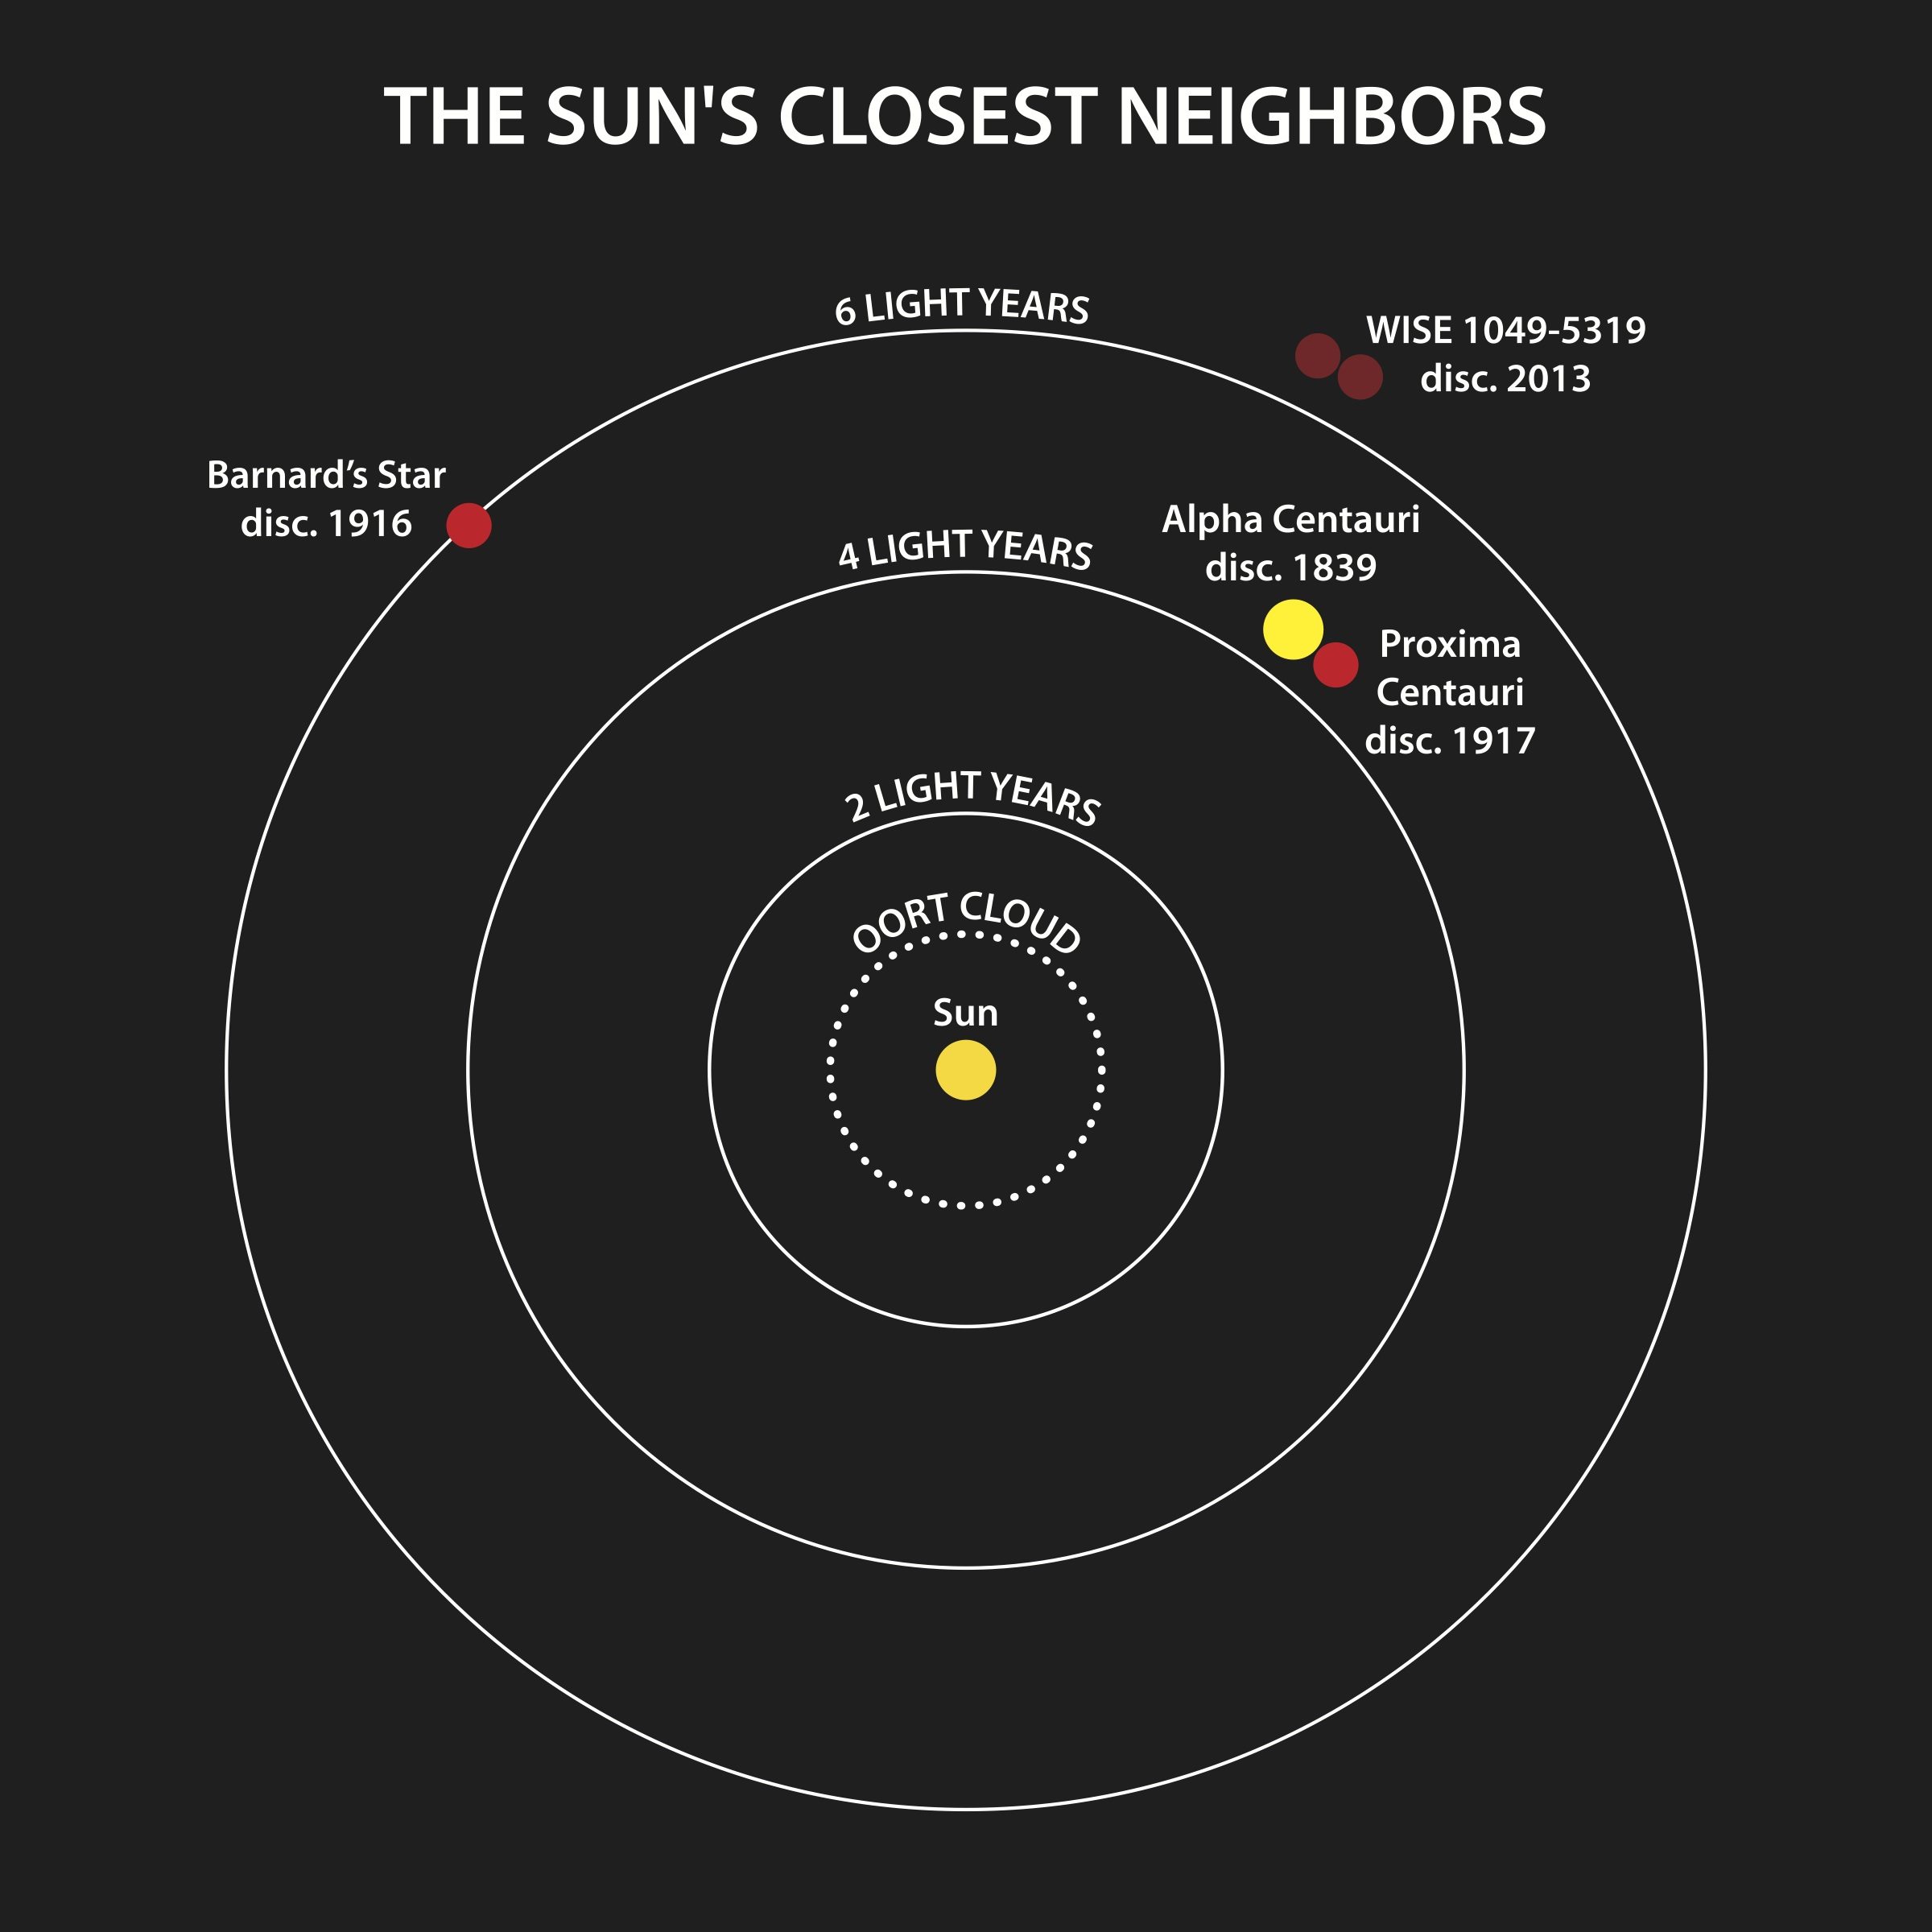 planets in order closest to the sun - photo #30